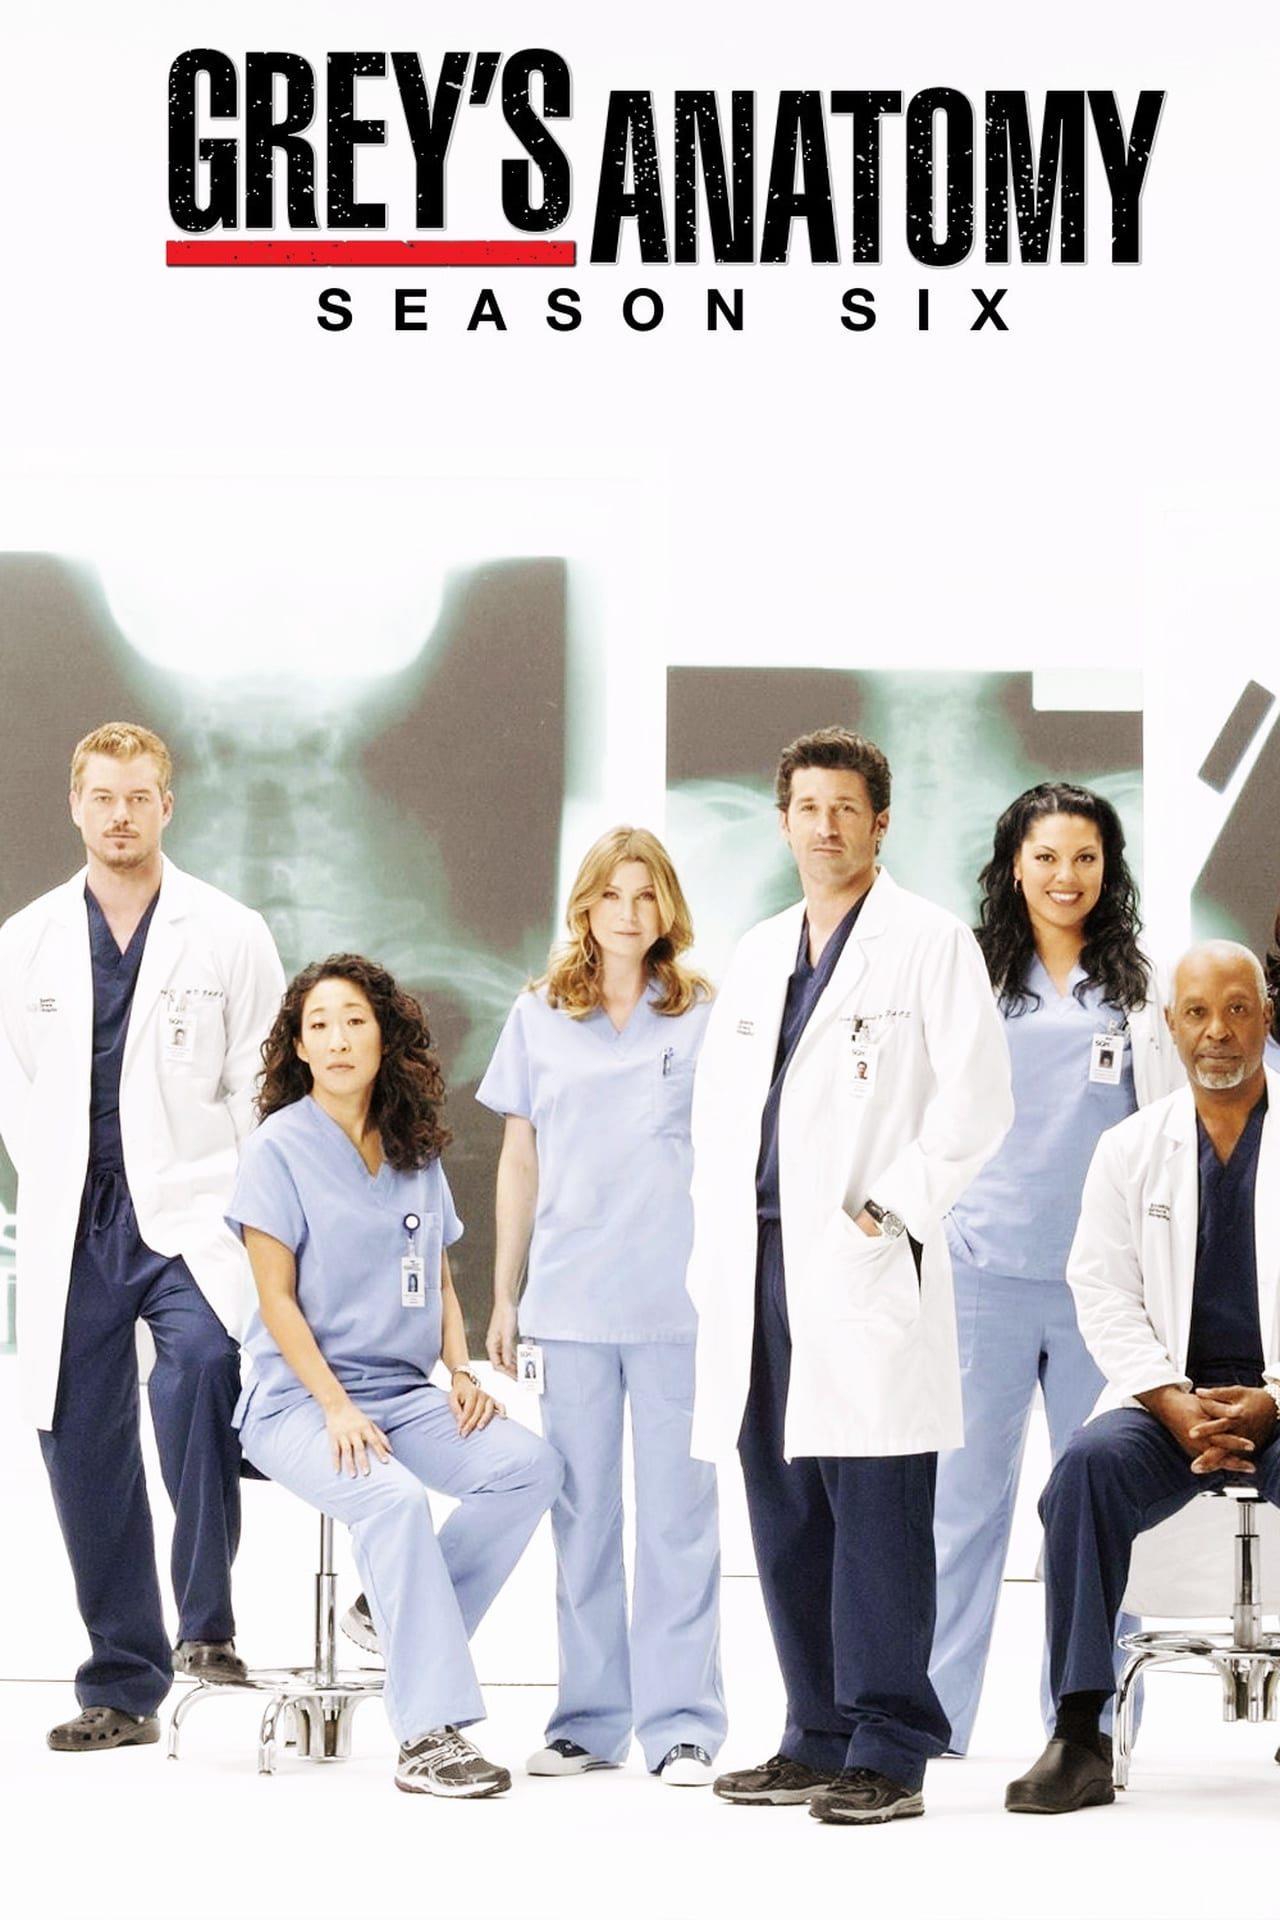 Putlocker Grey's Anatomy Season 6 (2009)